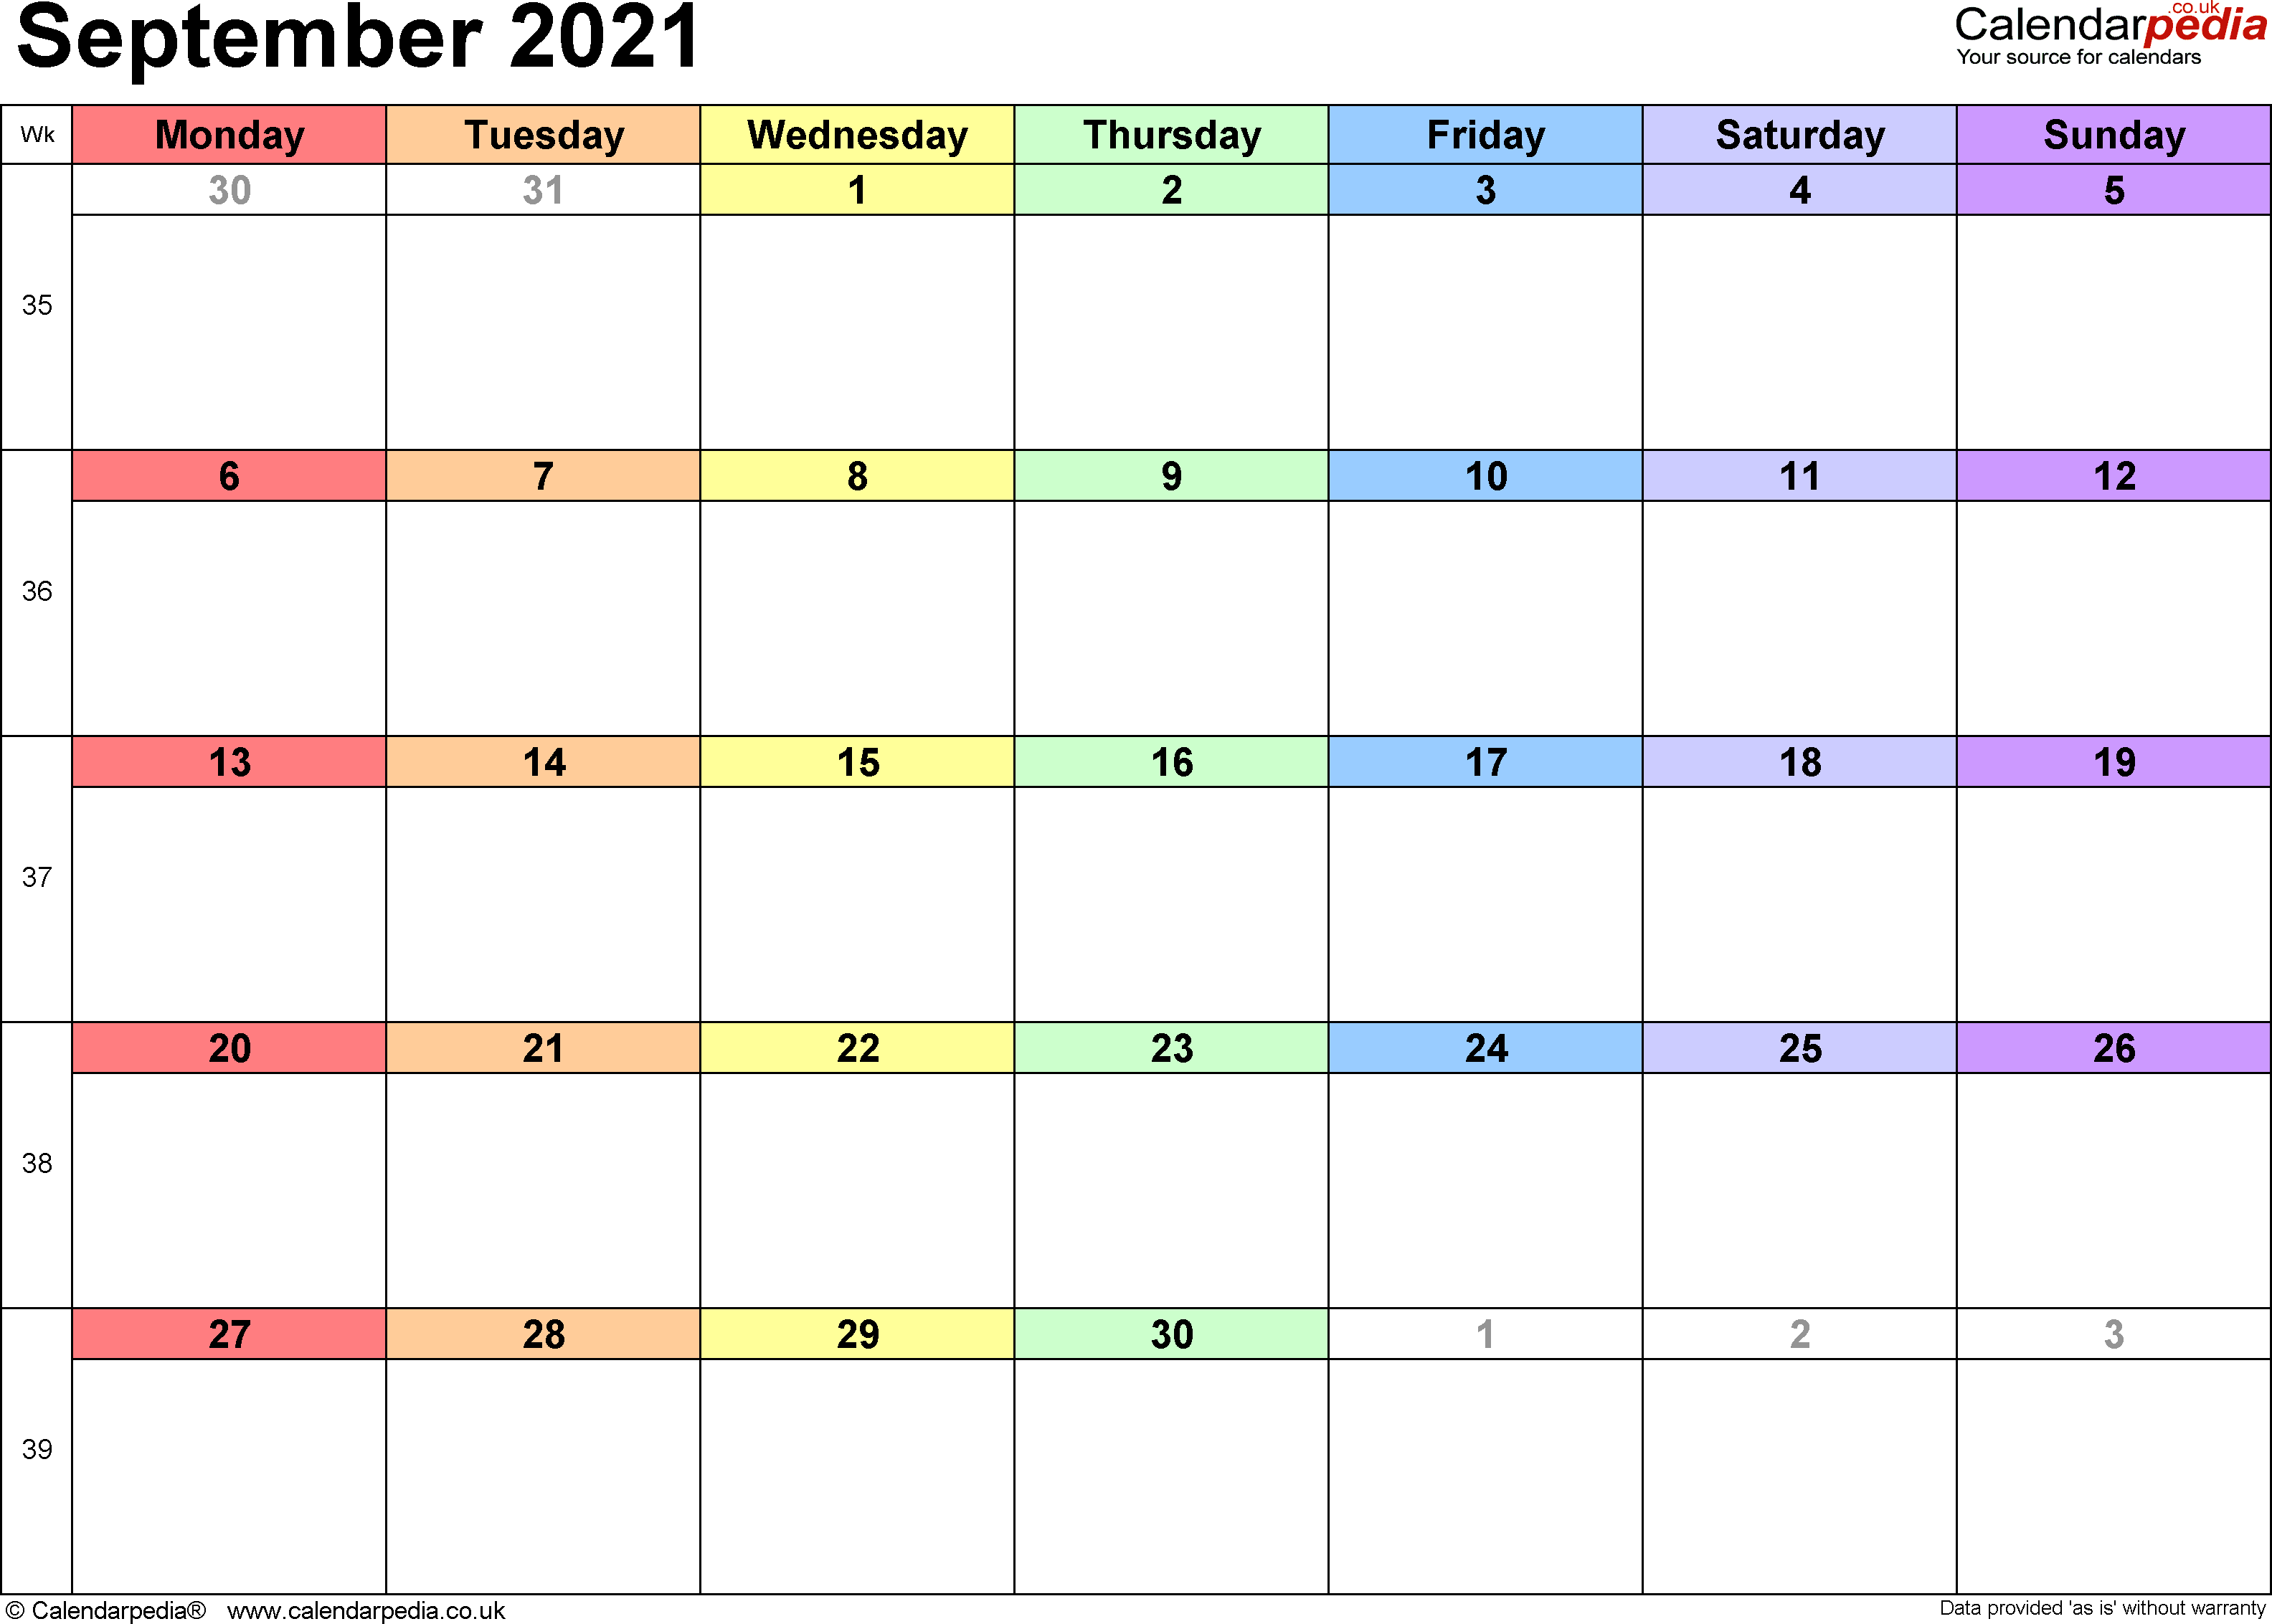 Calendar September 2021, landscape orientation, 1 page, with UK bank holidays and week numbers